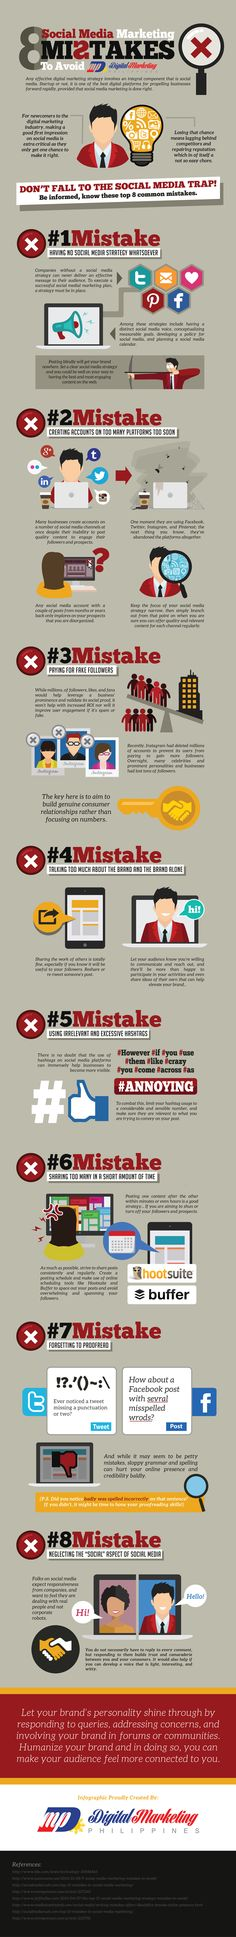 8 social media marketing mistakes to avoid (Infographic) | .rising